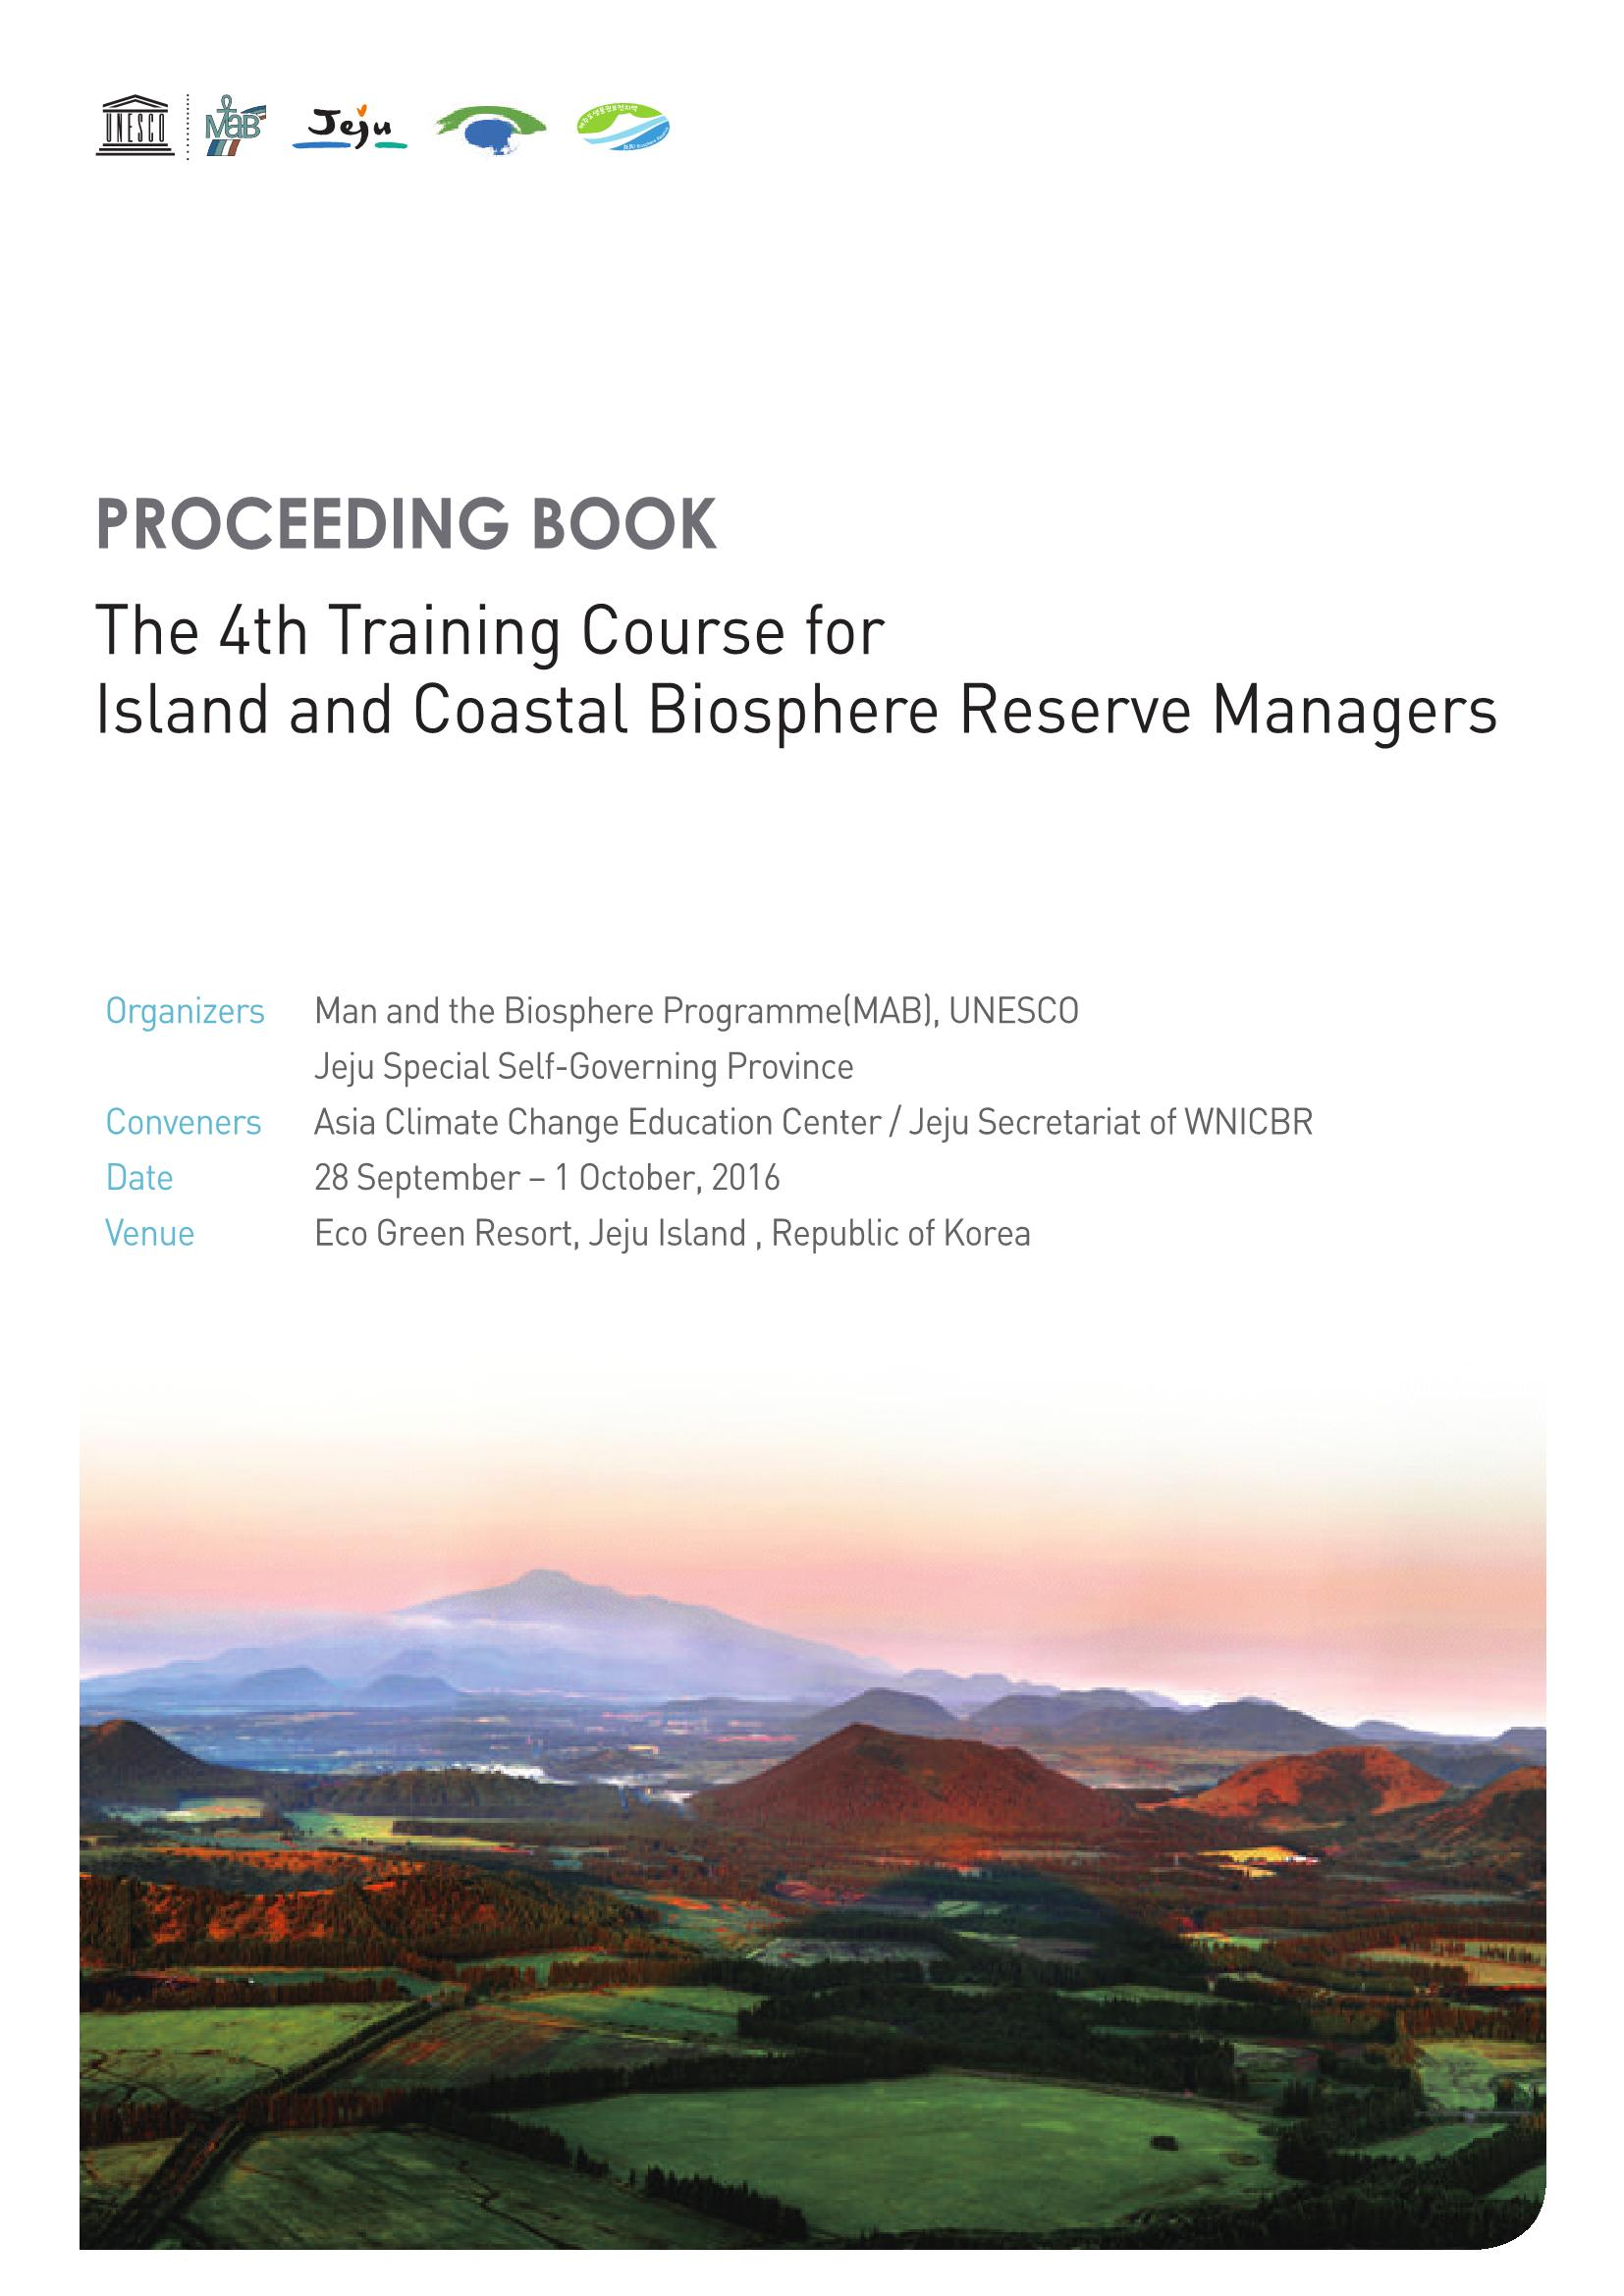 The 4th BR Manager Training Course Proceeding Book